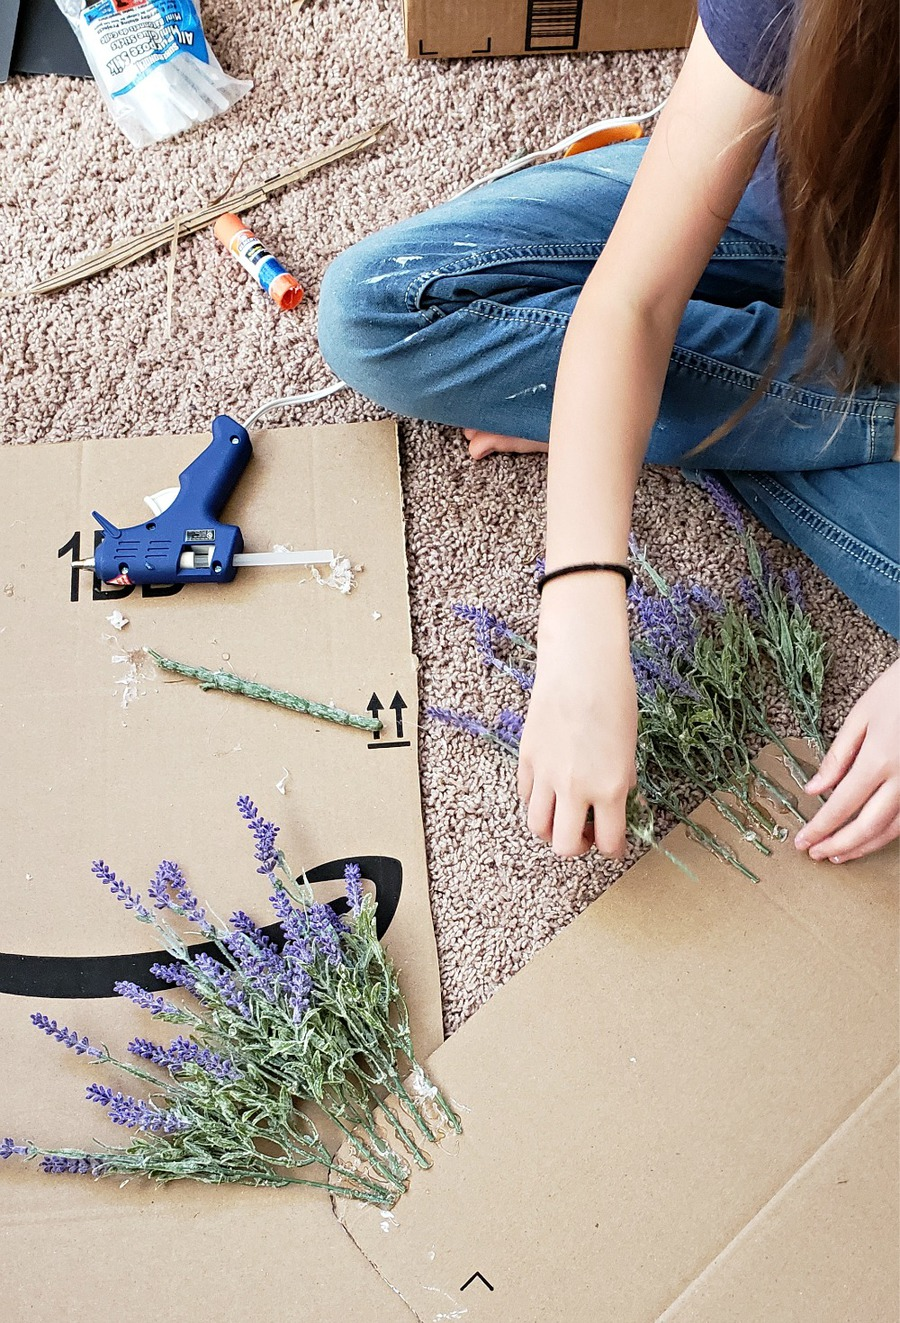 Hot gluing lavender flowers onto the back of the cardboard cutout.